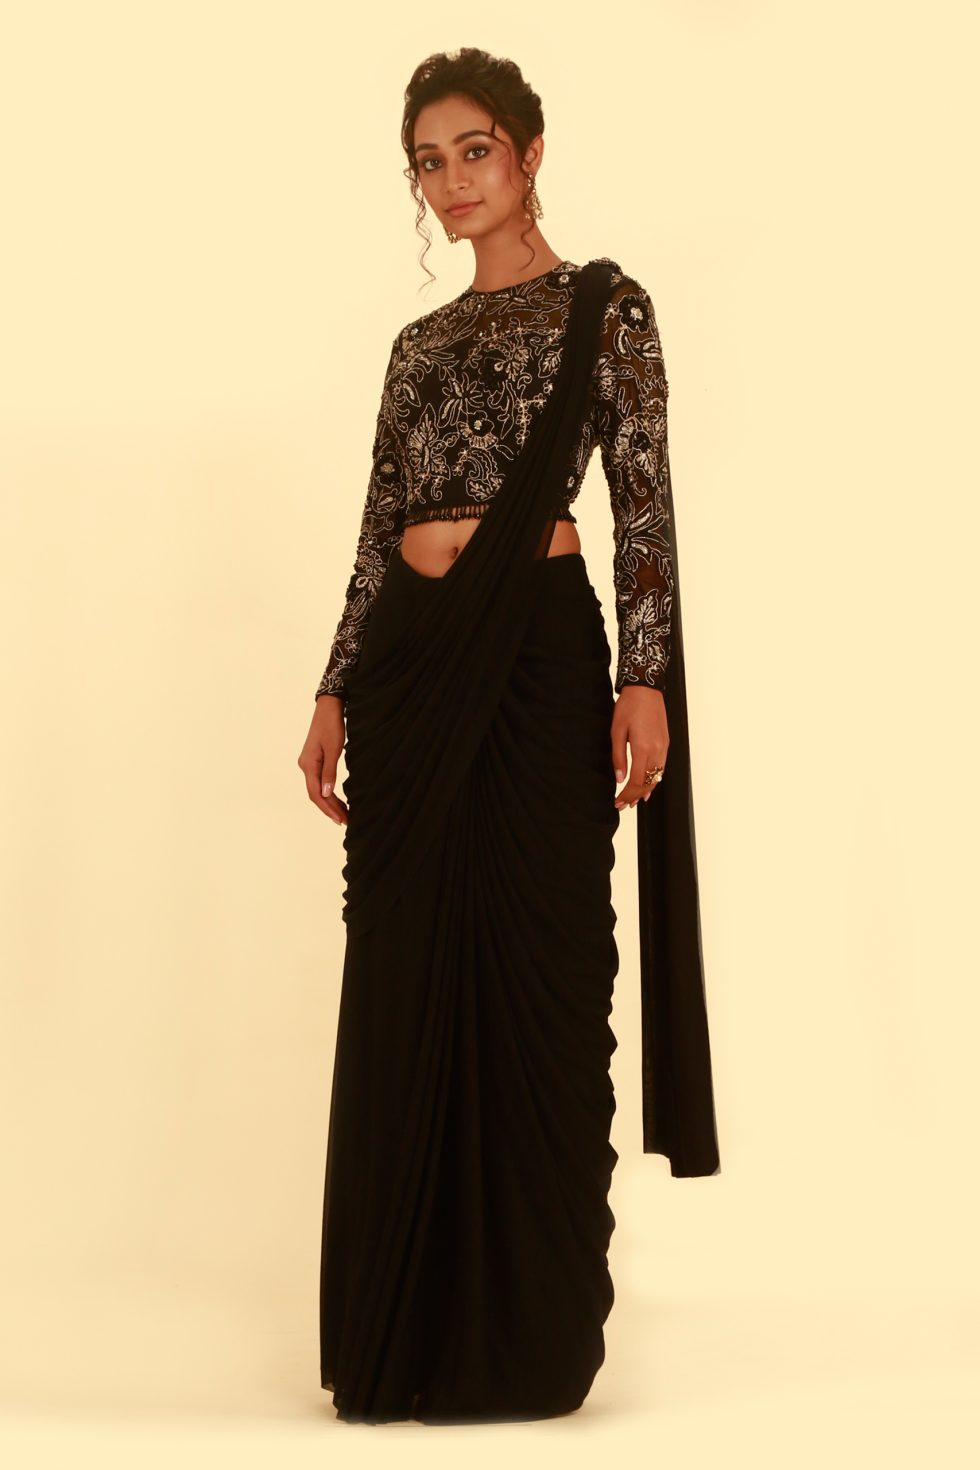 Ink Black Pre Stitched Lehenga Saree and Embroidered Choli with Cut Out Back, Gold Details and Tassels